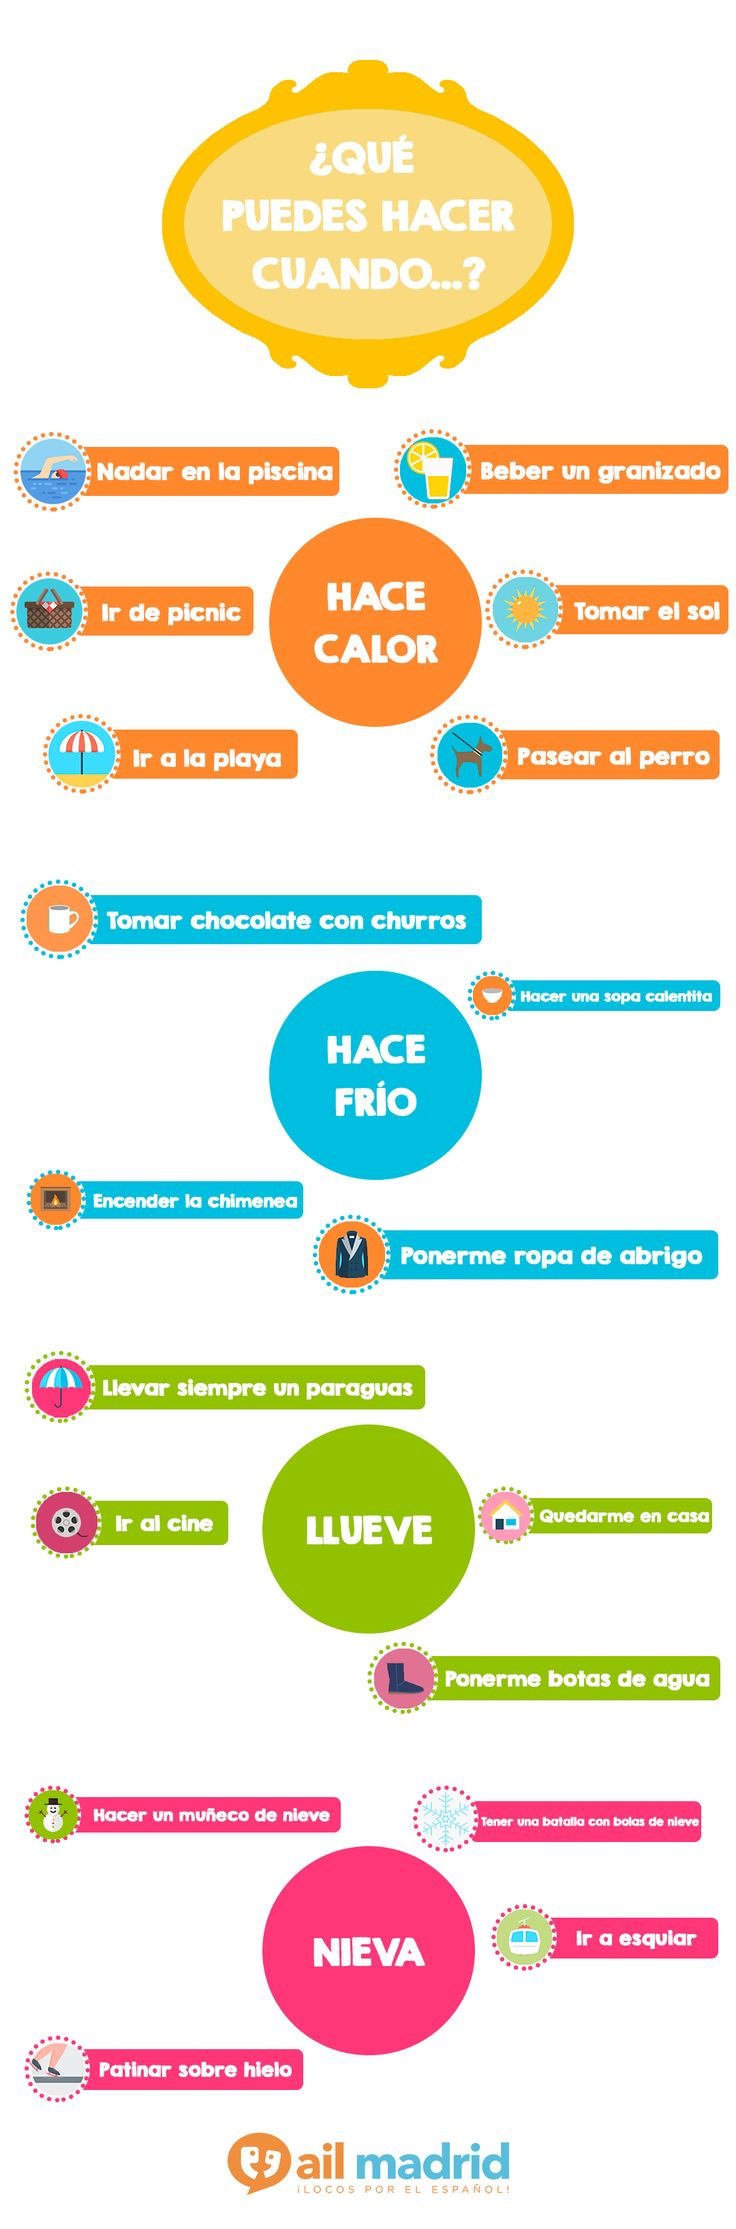 Workbooks weather expressions in spanish worksheets : 15 best Horarios, rutina diaria y ocio images on Pinterest ...